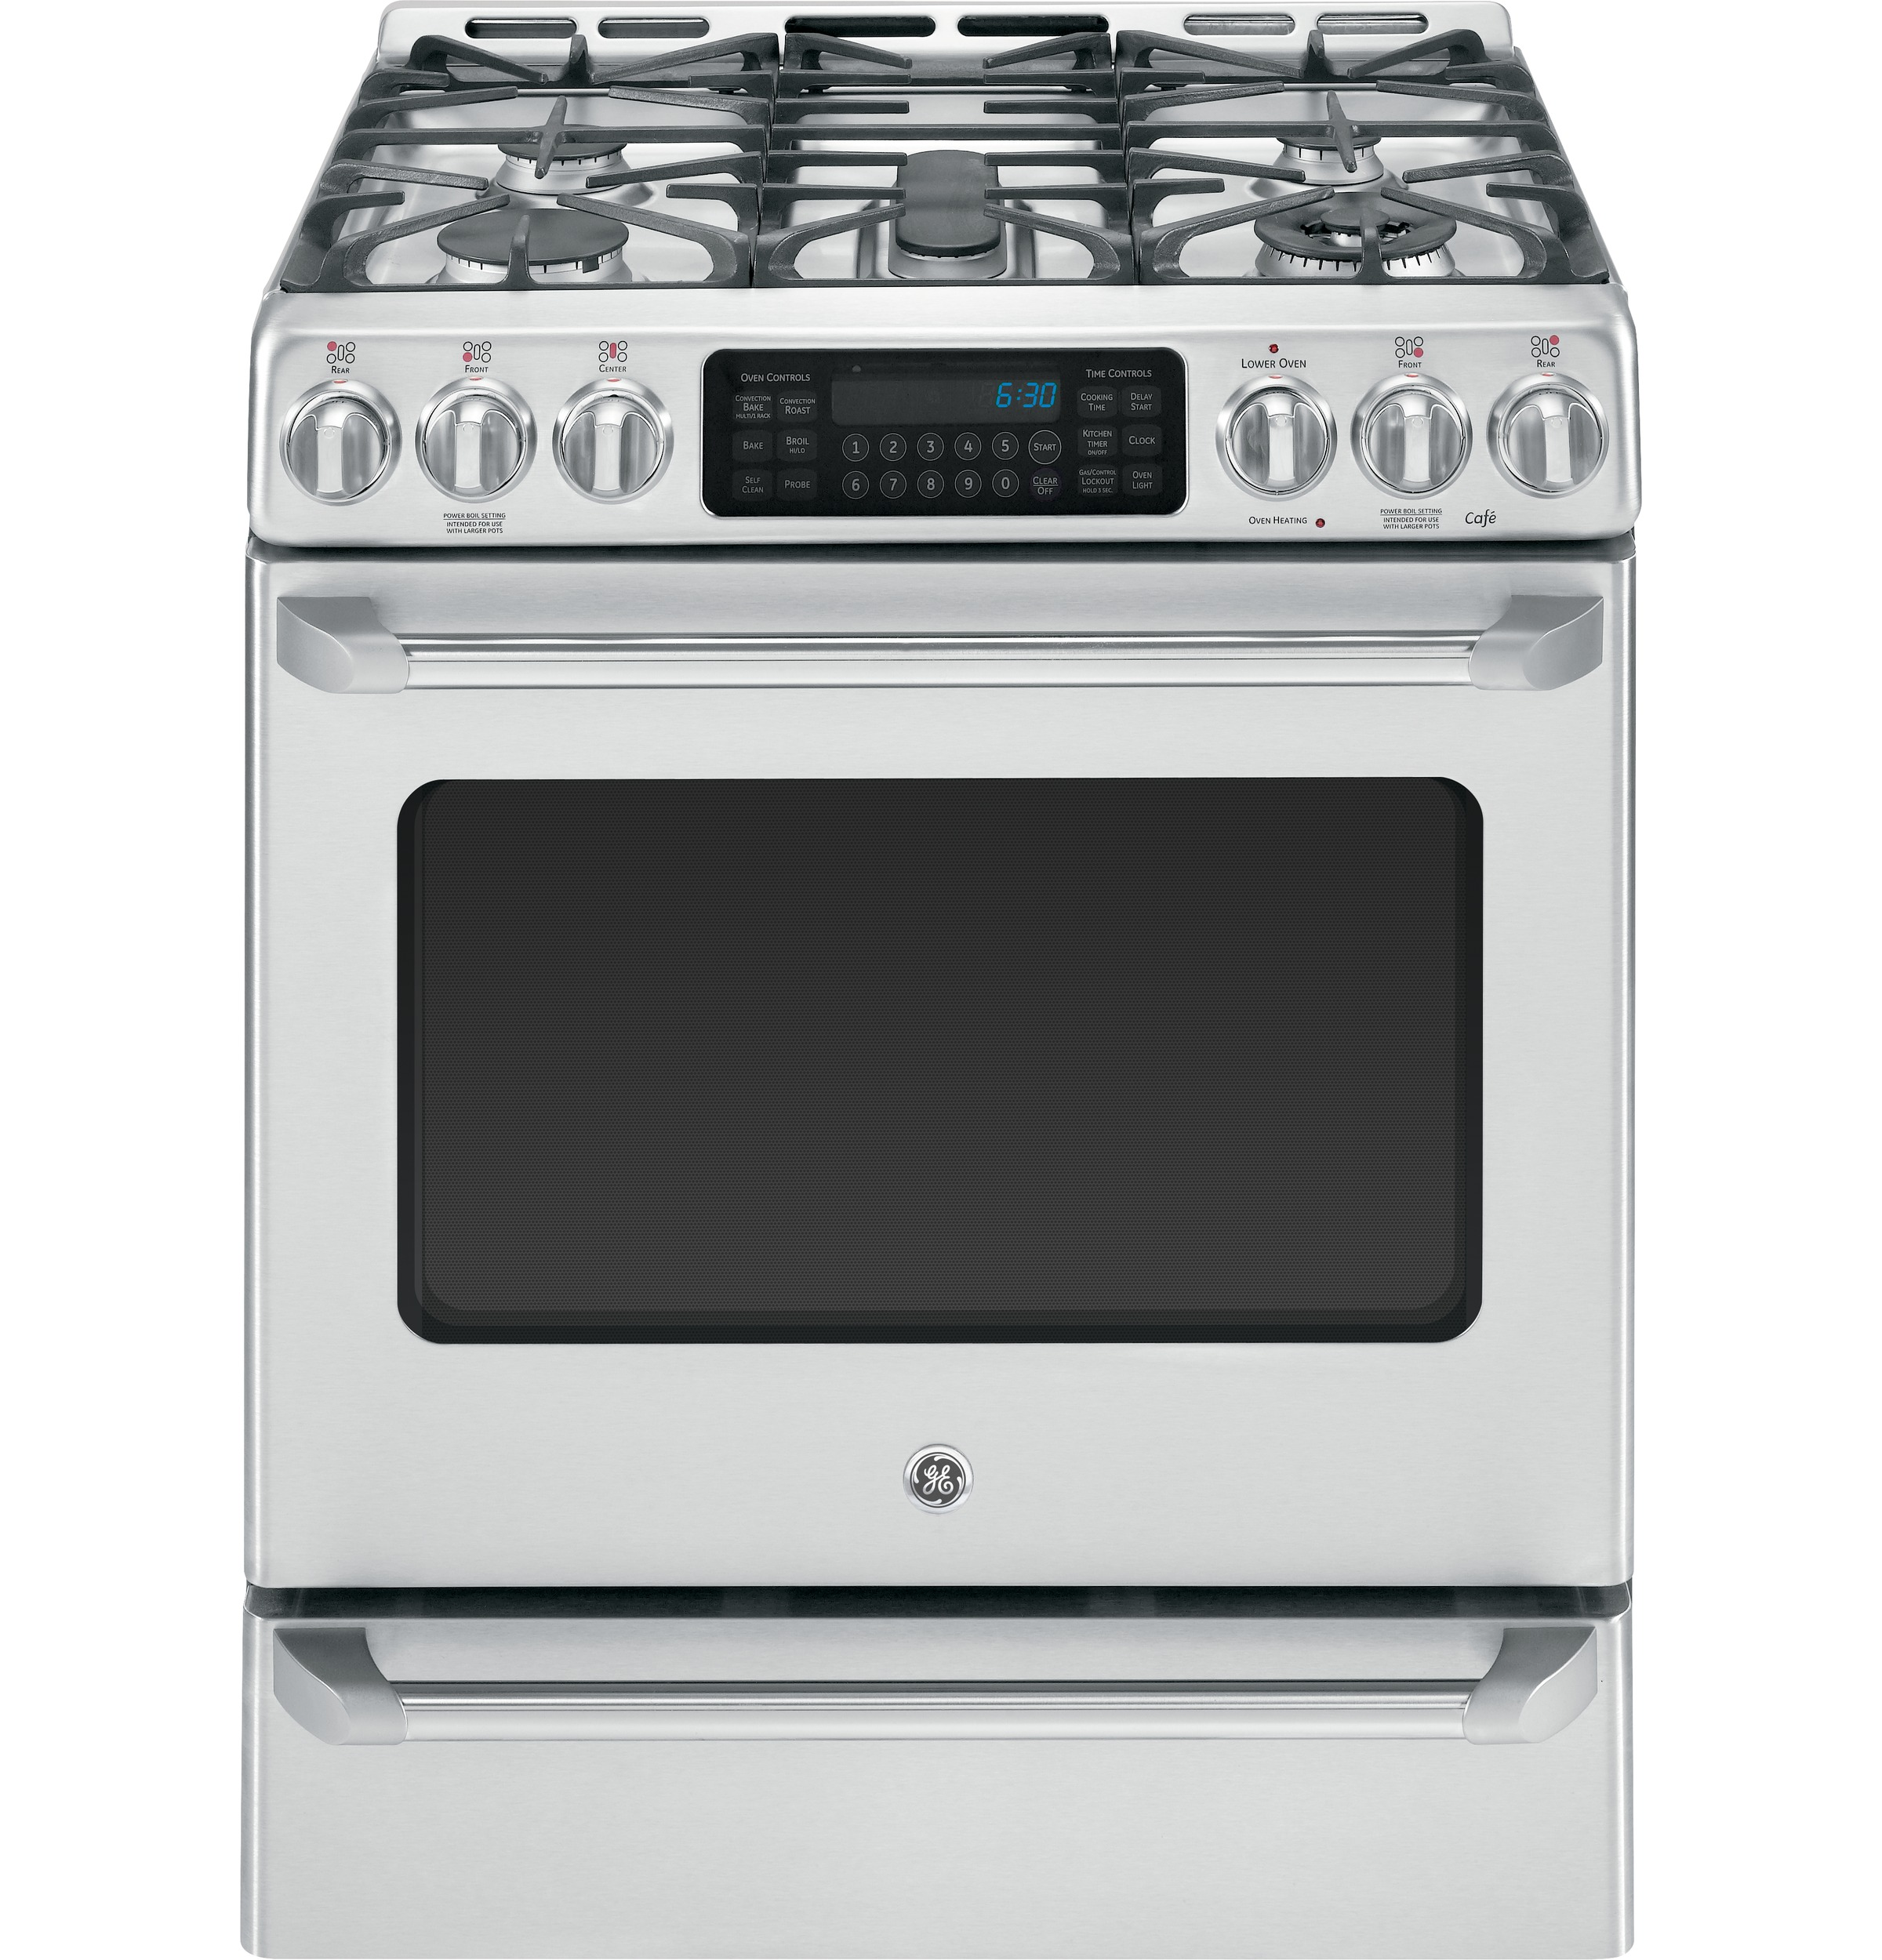 GE Cafe GE Café™ Series Slide-In Front Control Dual-Fuel Range with Baking Drawer